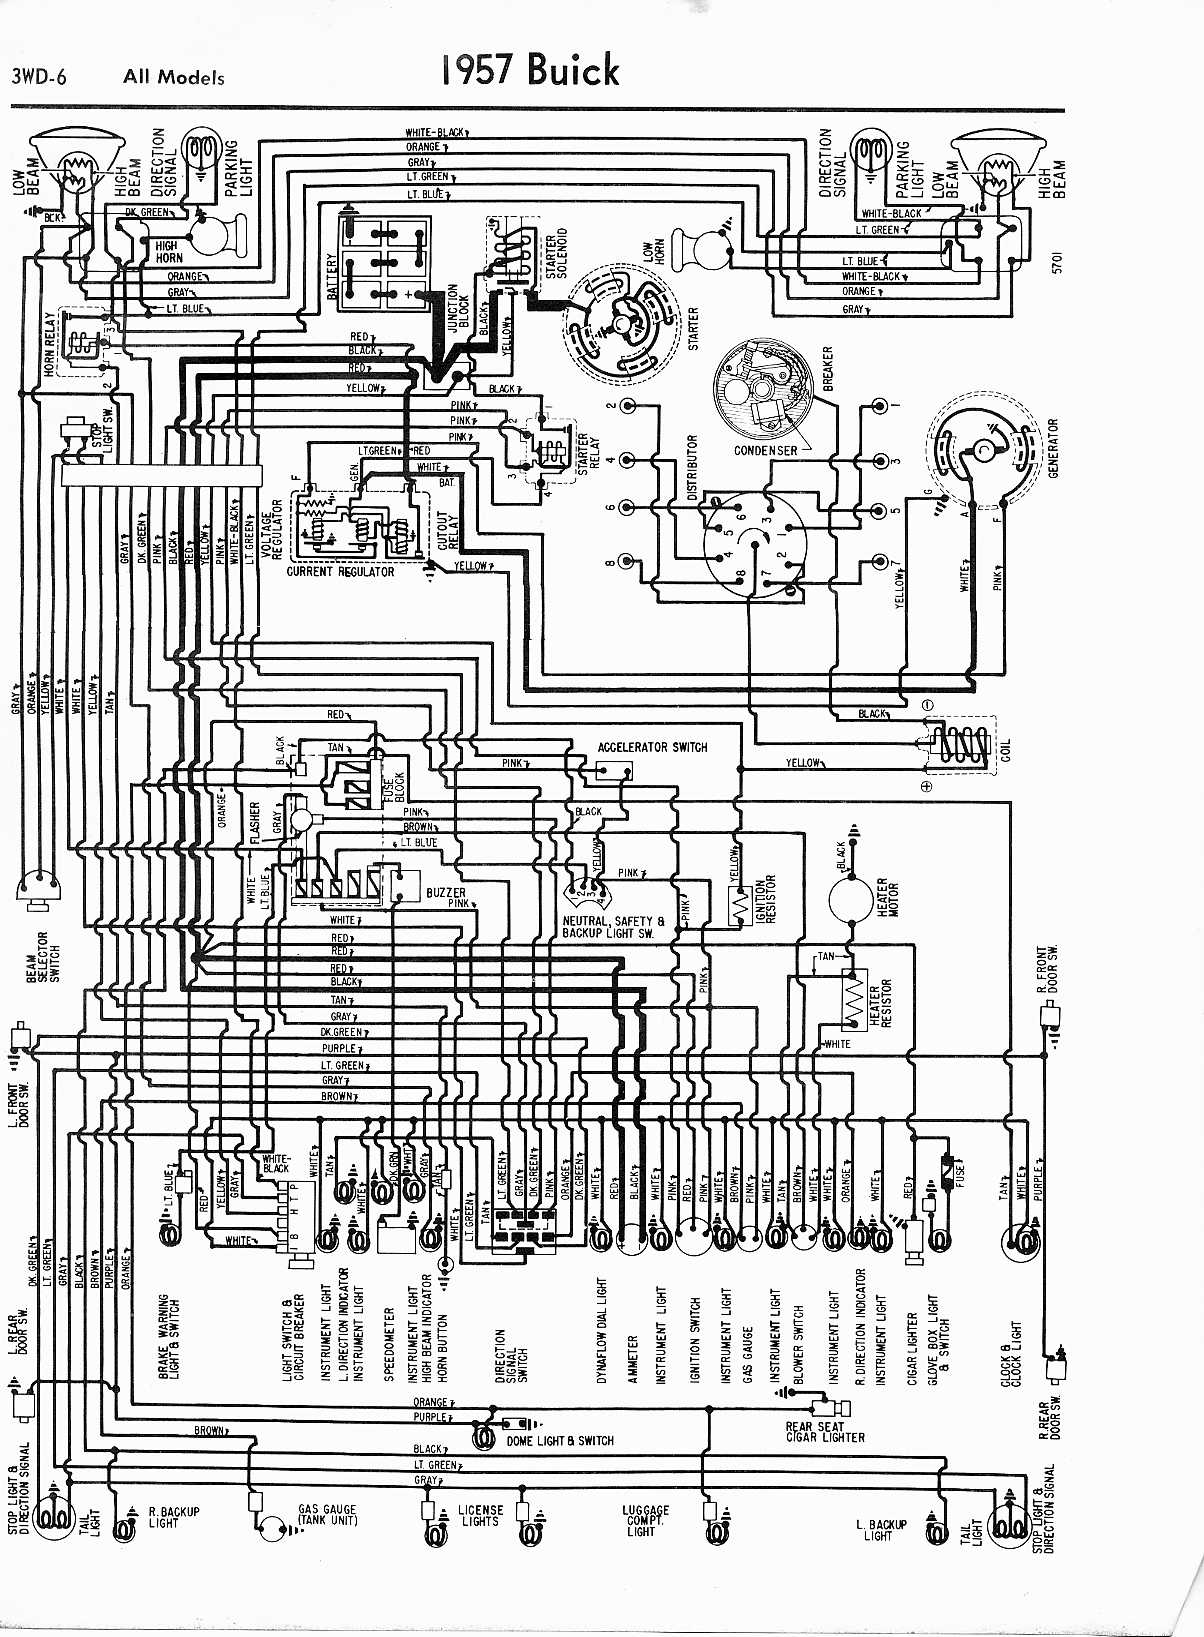 76 Dodge Power Wagon Wiring Schematic Great Design Of Diagram 72 Jeep Diagrams Schematics Rh Mychampagnedaze Com 77